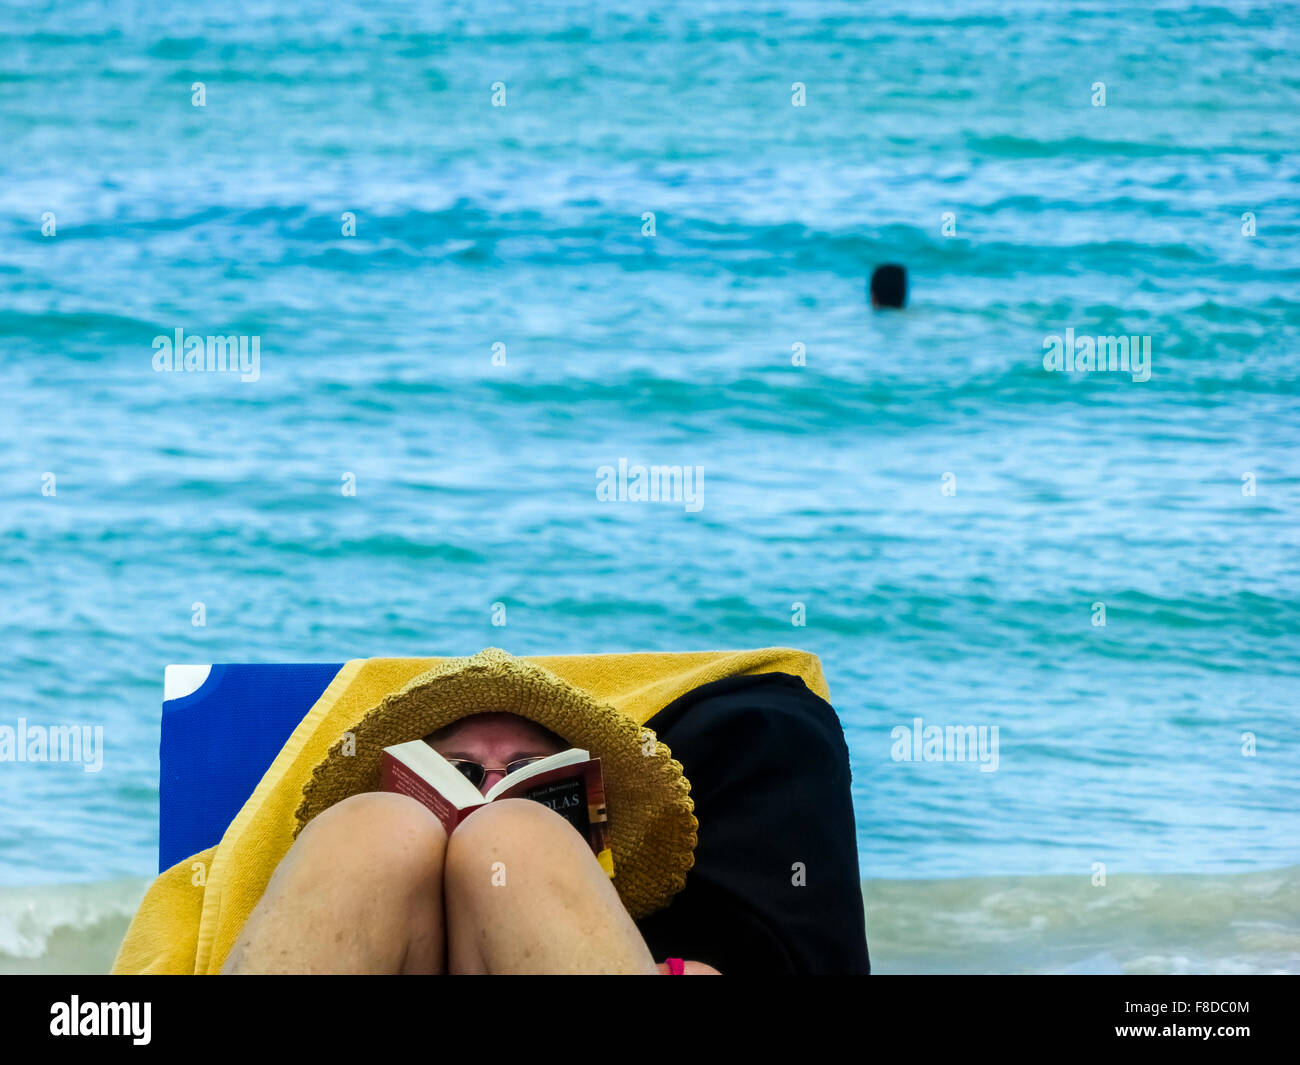 tourist while reading a book, sunbathe on loungers, reading on vacation in Varadero, Cuba, North America, Matanzas, - Stock Image